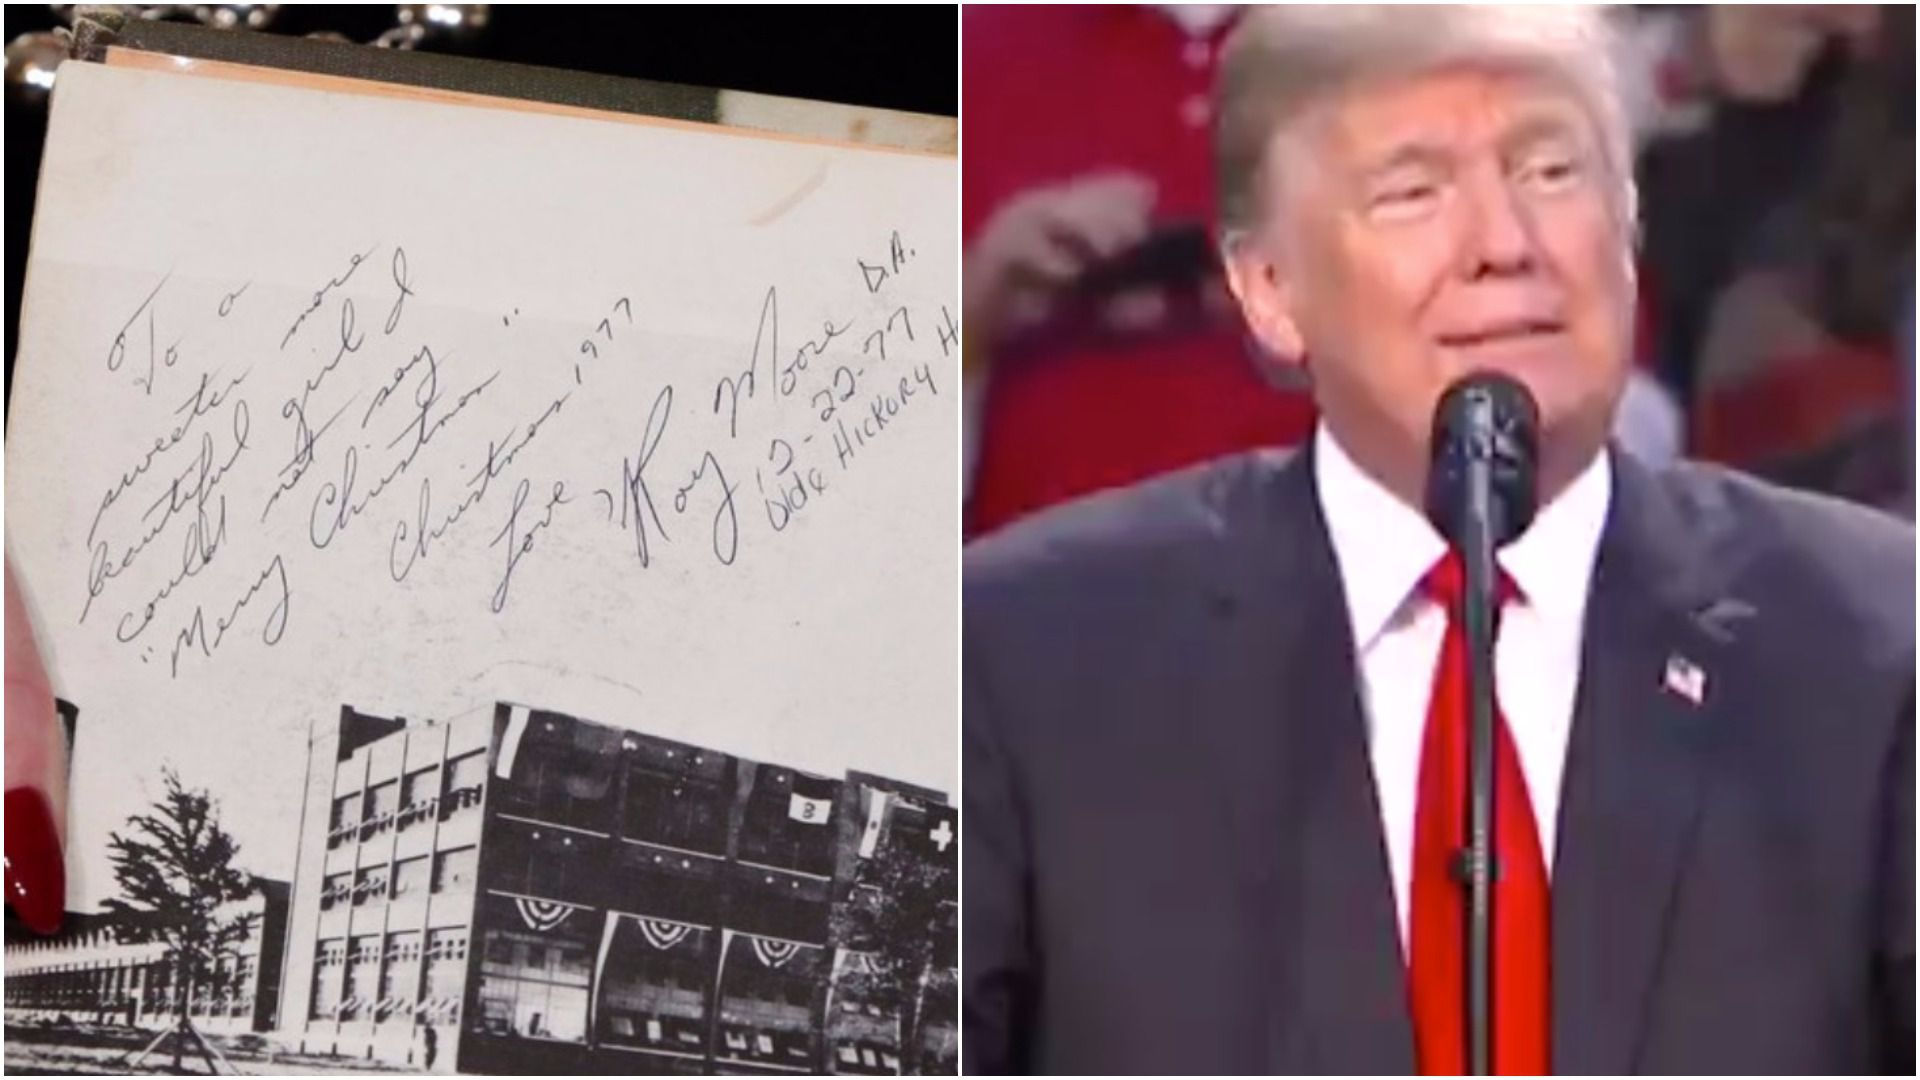 Trump and the yearbook